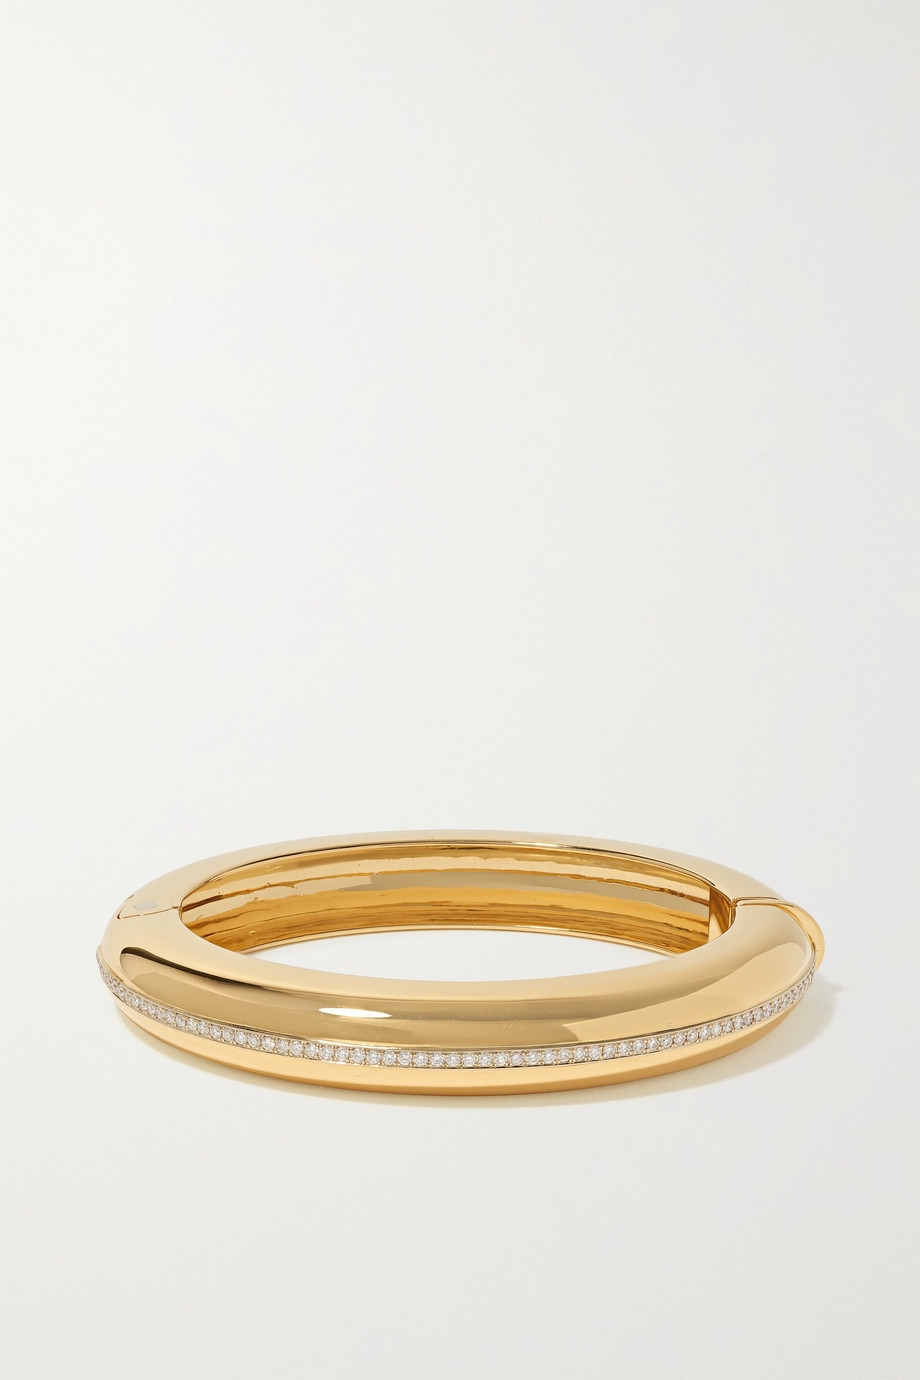 Fred Leighton Collection 18-karat gold diamond bangle